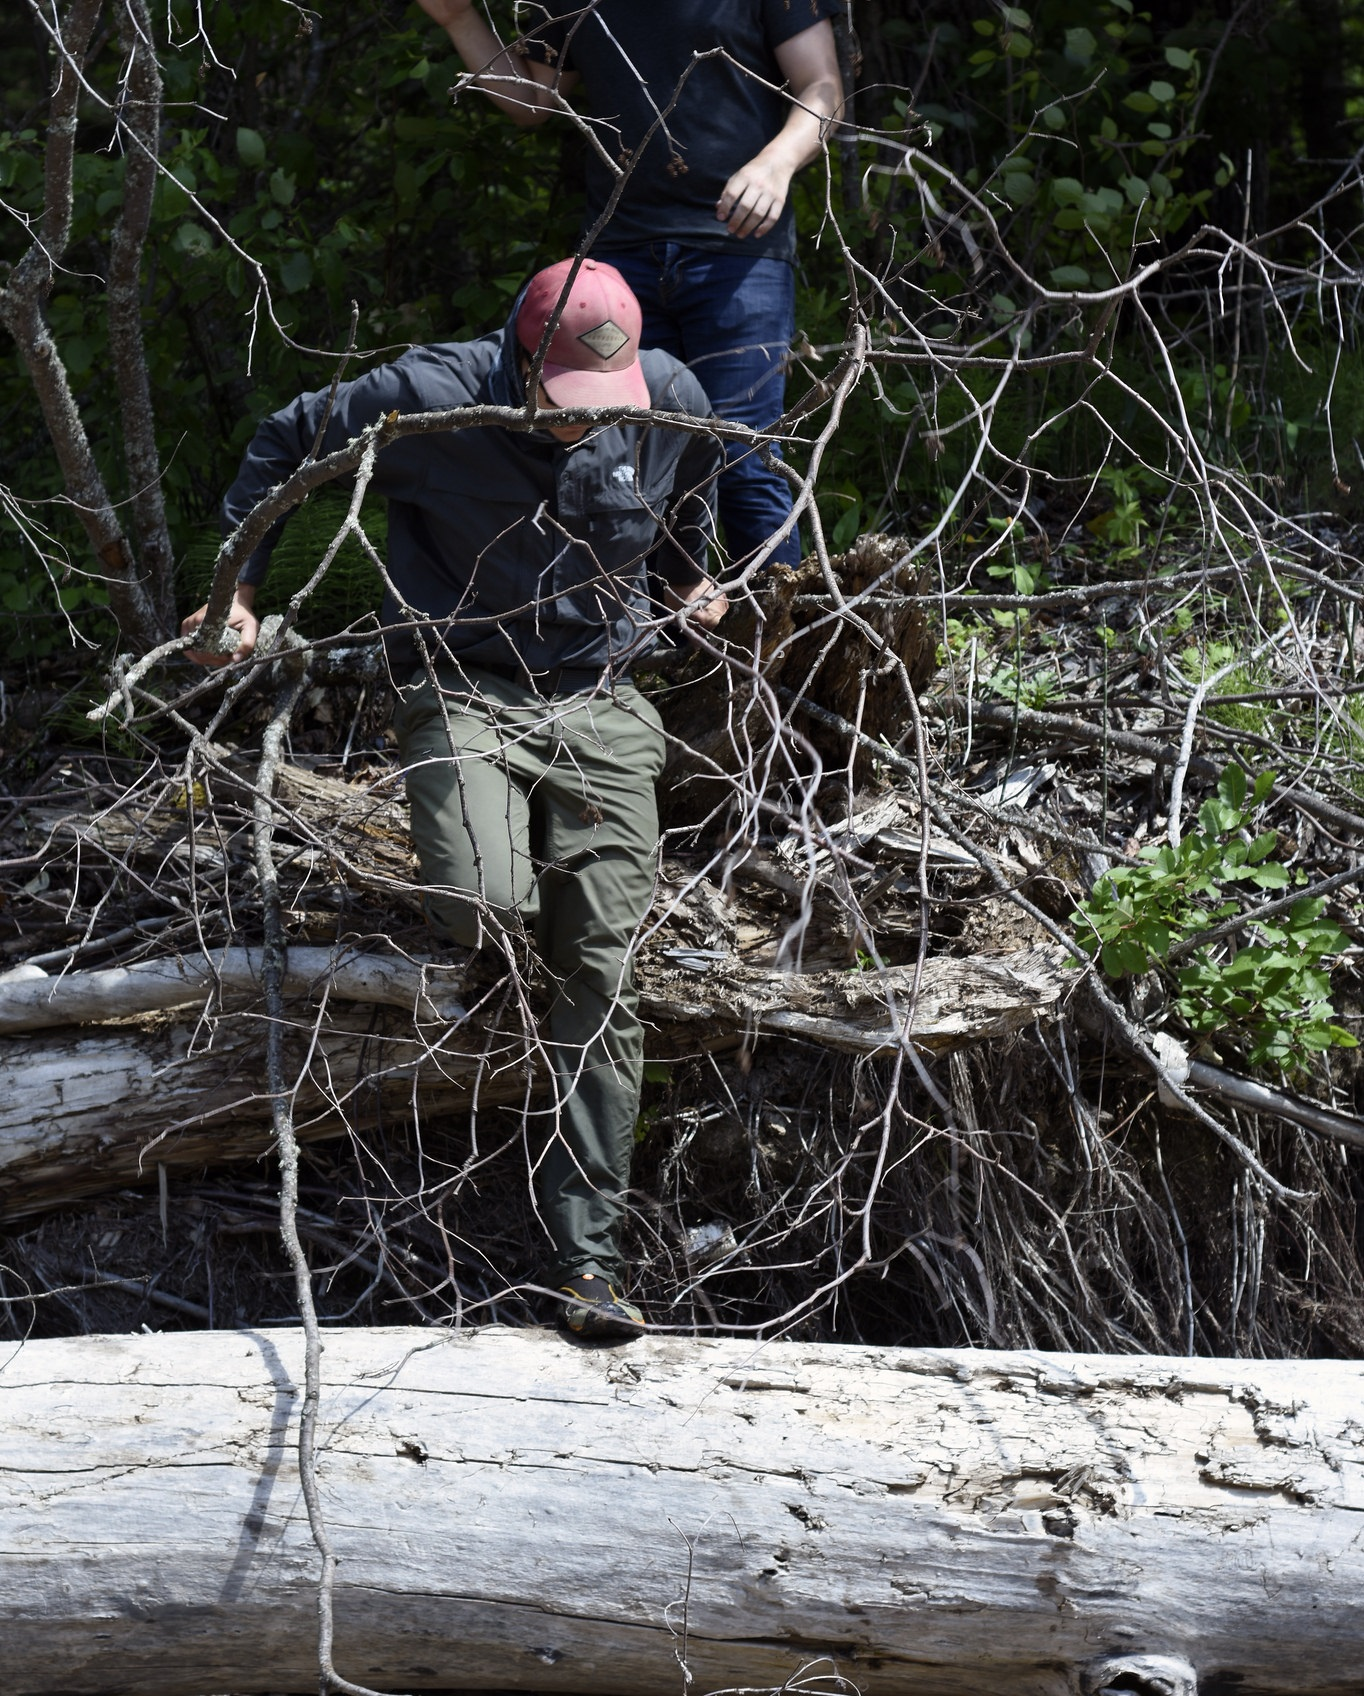 Leading the hike over fallen trees and jagged branches.